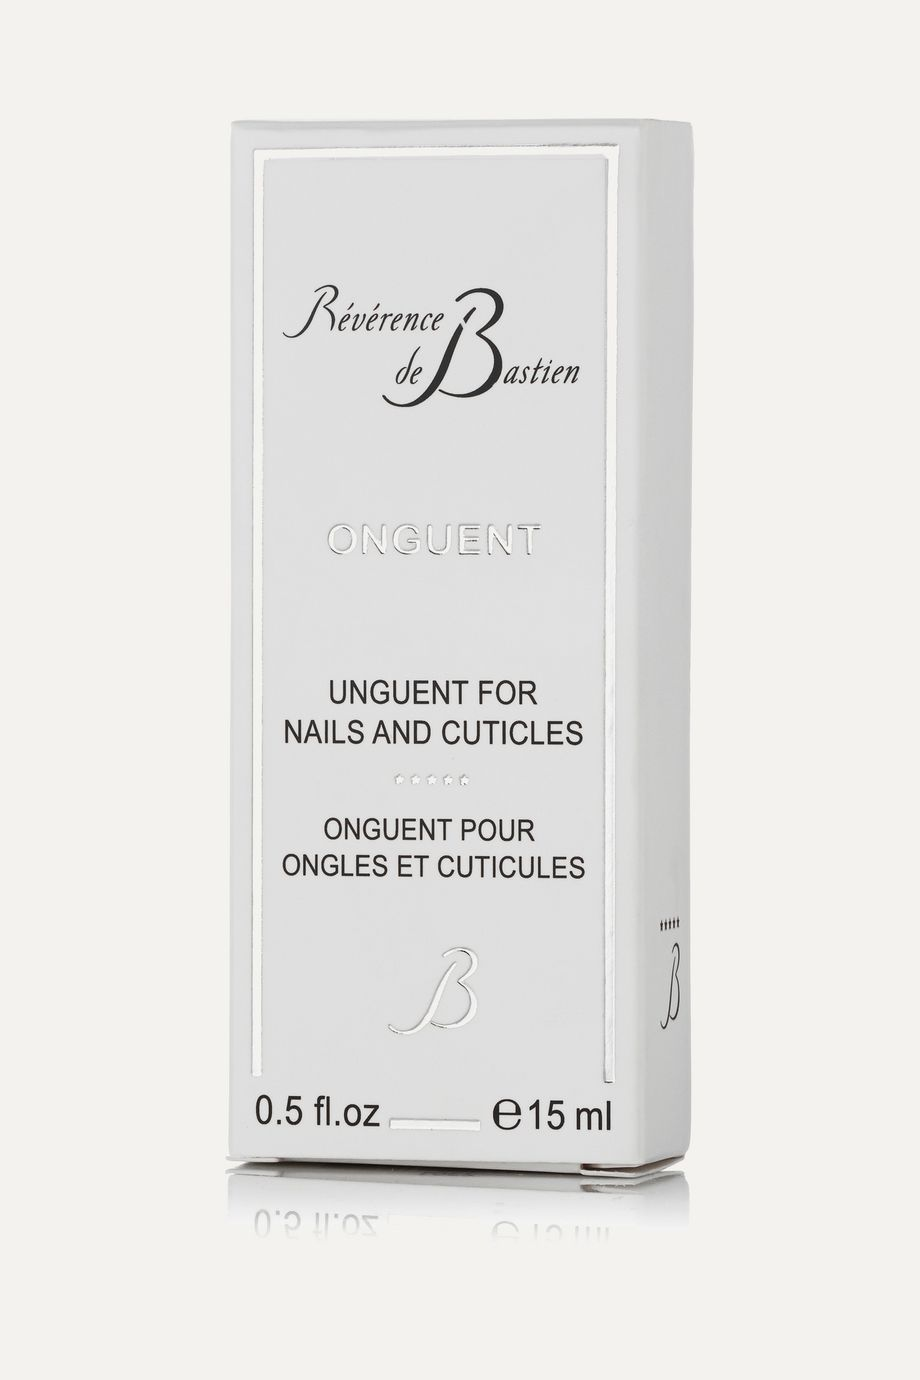 REVERENCE DE BASTIEN Unguent for Nails and Cuticles, 15ml